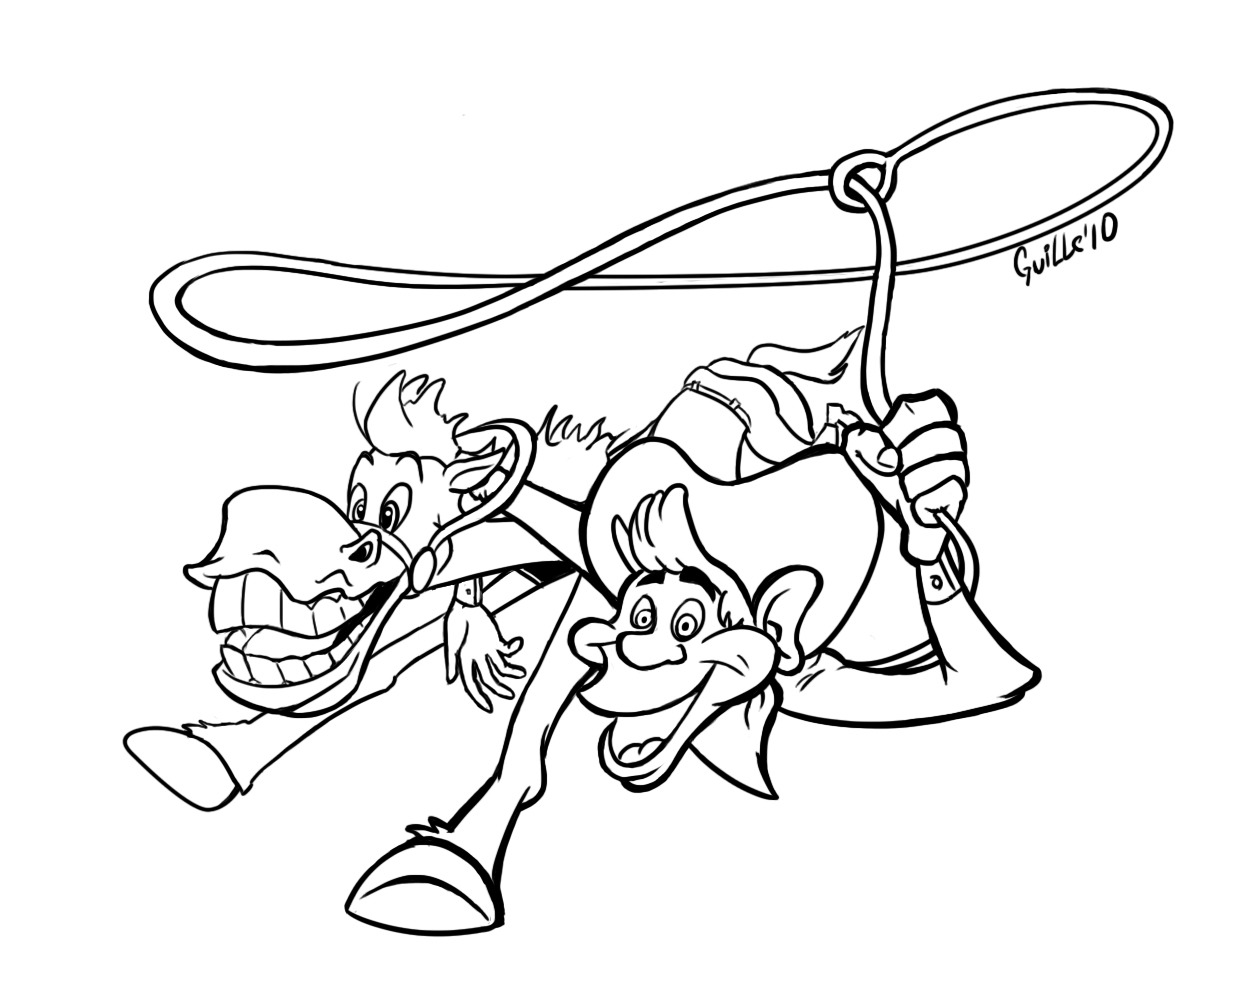 sue coloring pages - photo#20